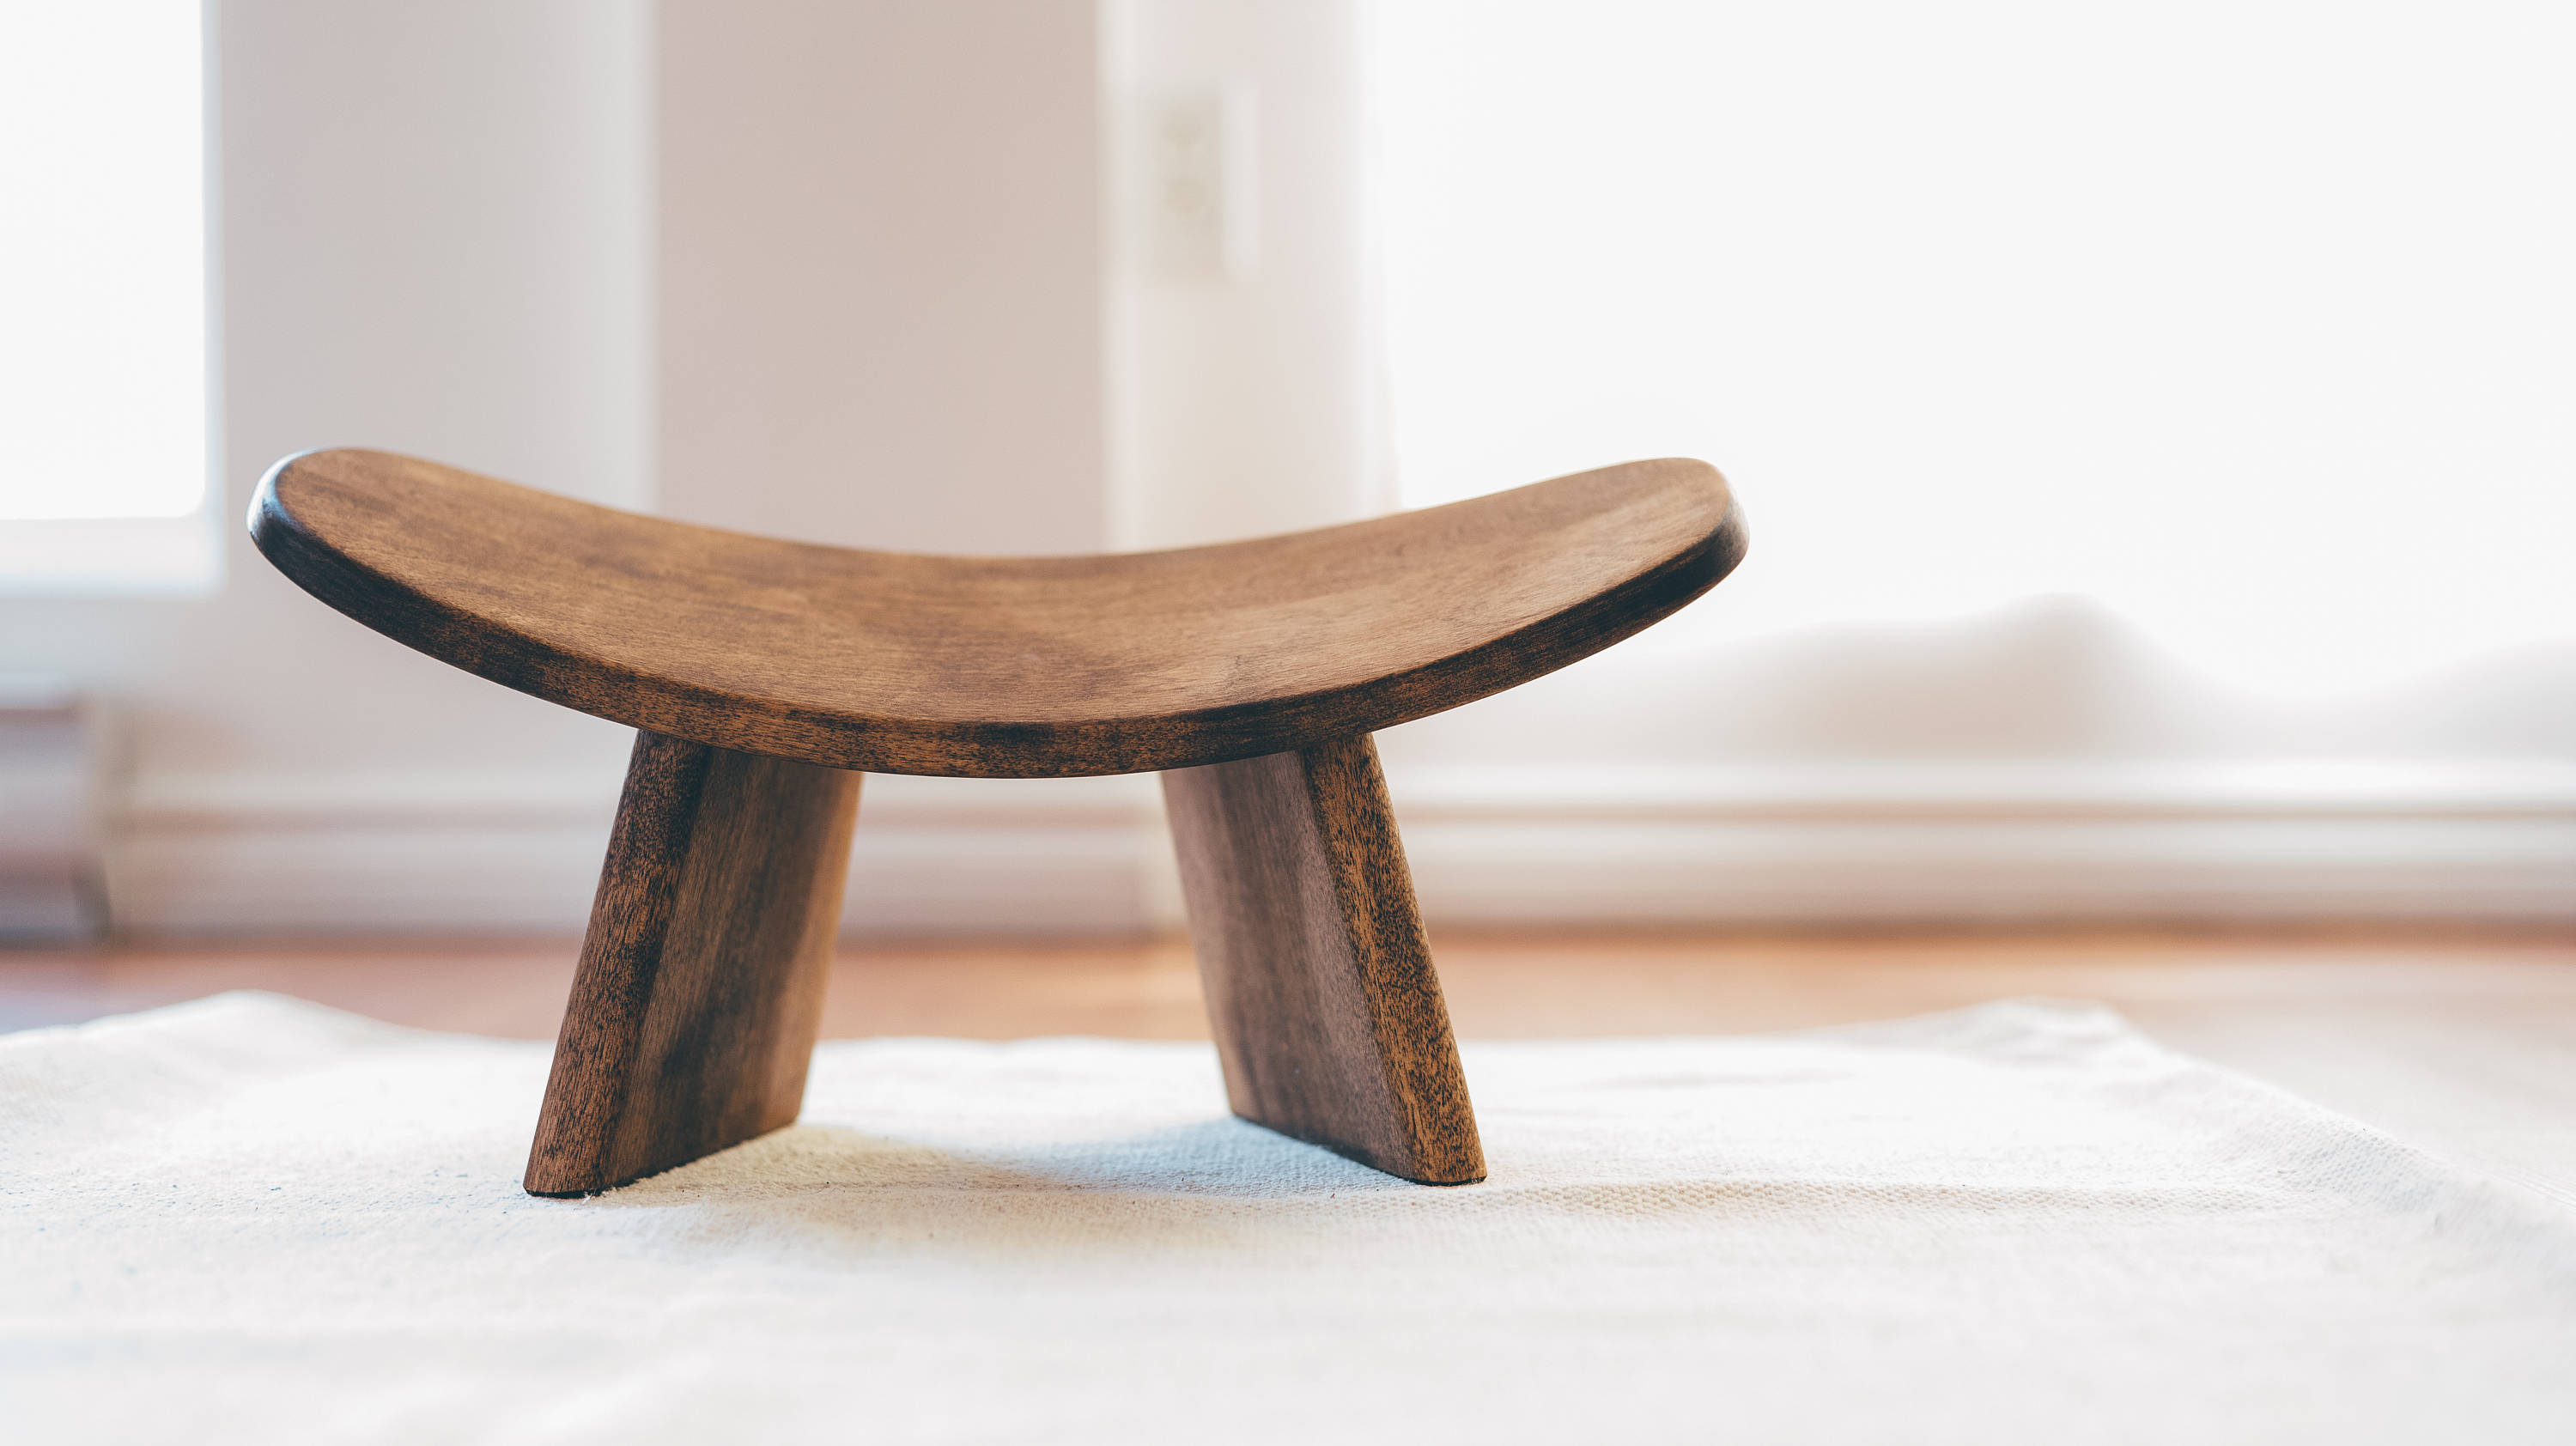 Find The Perfect Japanese Floor Chair - The 5 Best Floors Chairs